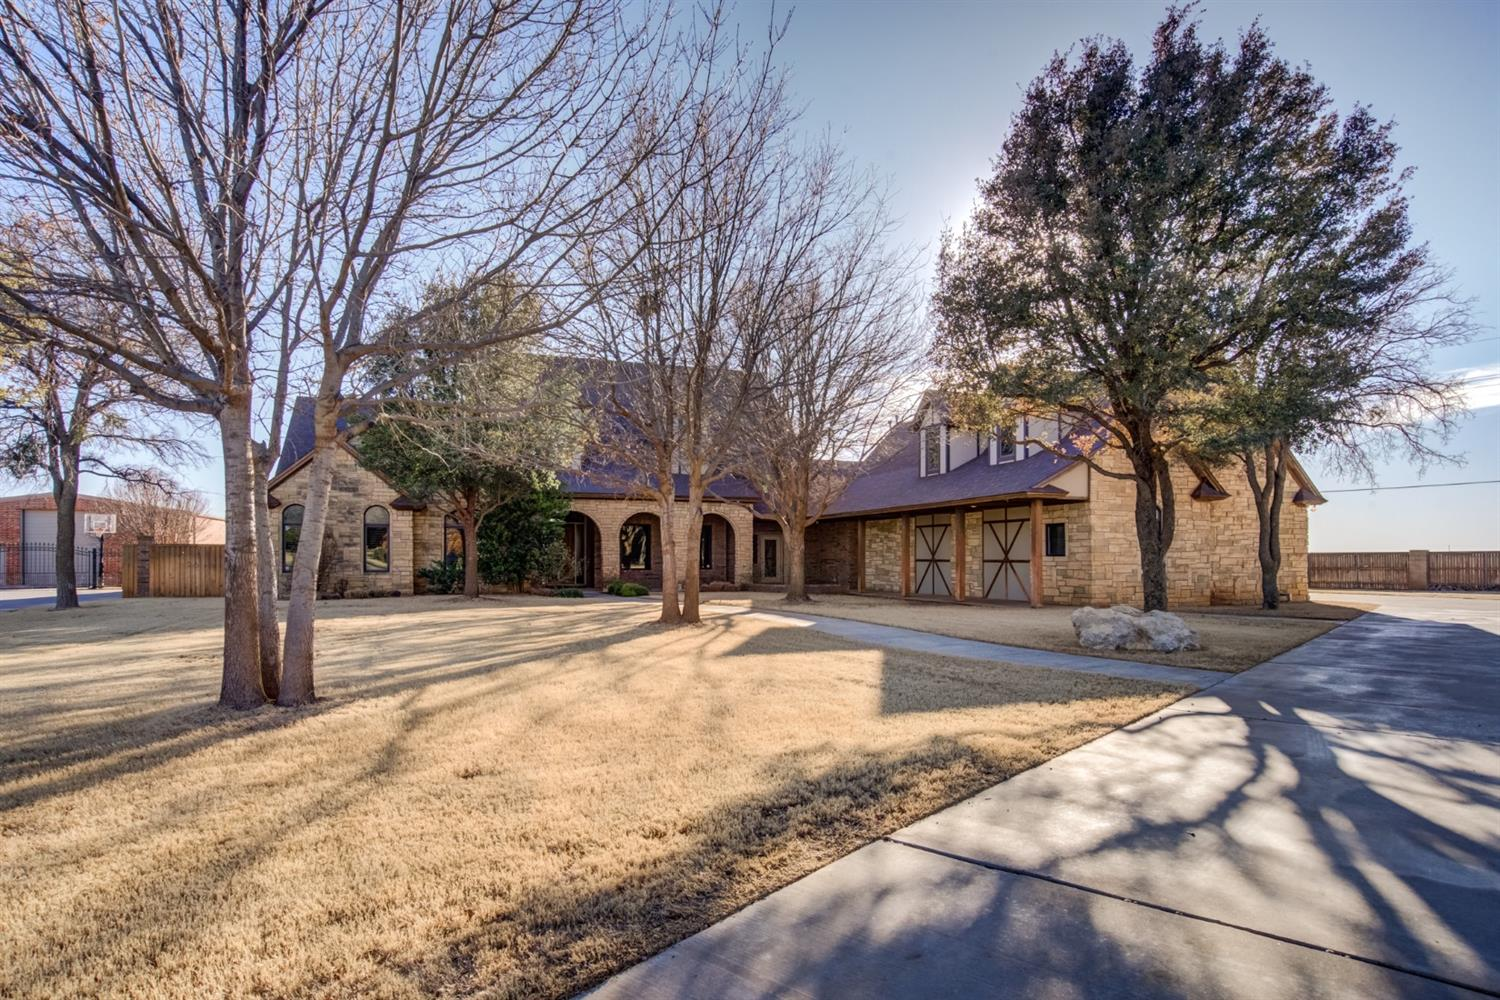 Enjoy luxury living in this custom home located on a spacious one acre lot. As you pull up, gorgeous landscaping and a quiet cul-de-sac welcome you to this one-of-a kind former Parade home. Entertaining friends and family is easy with a hearth room accented with soaring ceilings, stone fireplace and an open concept kitchen featuring Wolf range, Sub-Zero fridge, ice maker and a cozy breakfast area complete with fireplace.  You'll find plenty of space for the family with a huge basement media room, kids' homework area, study and a huge bonus room ideal for a homeschooling, a gym or work area. A sequestered Master suite is the perfect place to unwind with a sitting area and private patio with koi pond. Guests or children have plenty of space in the additional rooms with walk-in closets.  With Cooper Schools and fantastic neighborhood amenities including a park, pools and tennis courts, you'll want to see this one before it's gone.